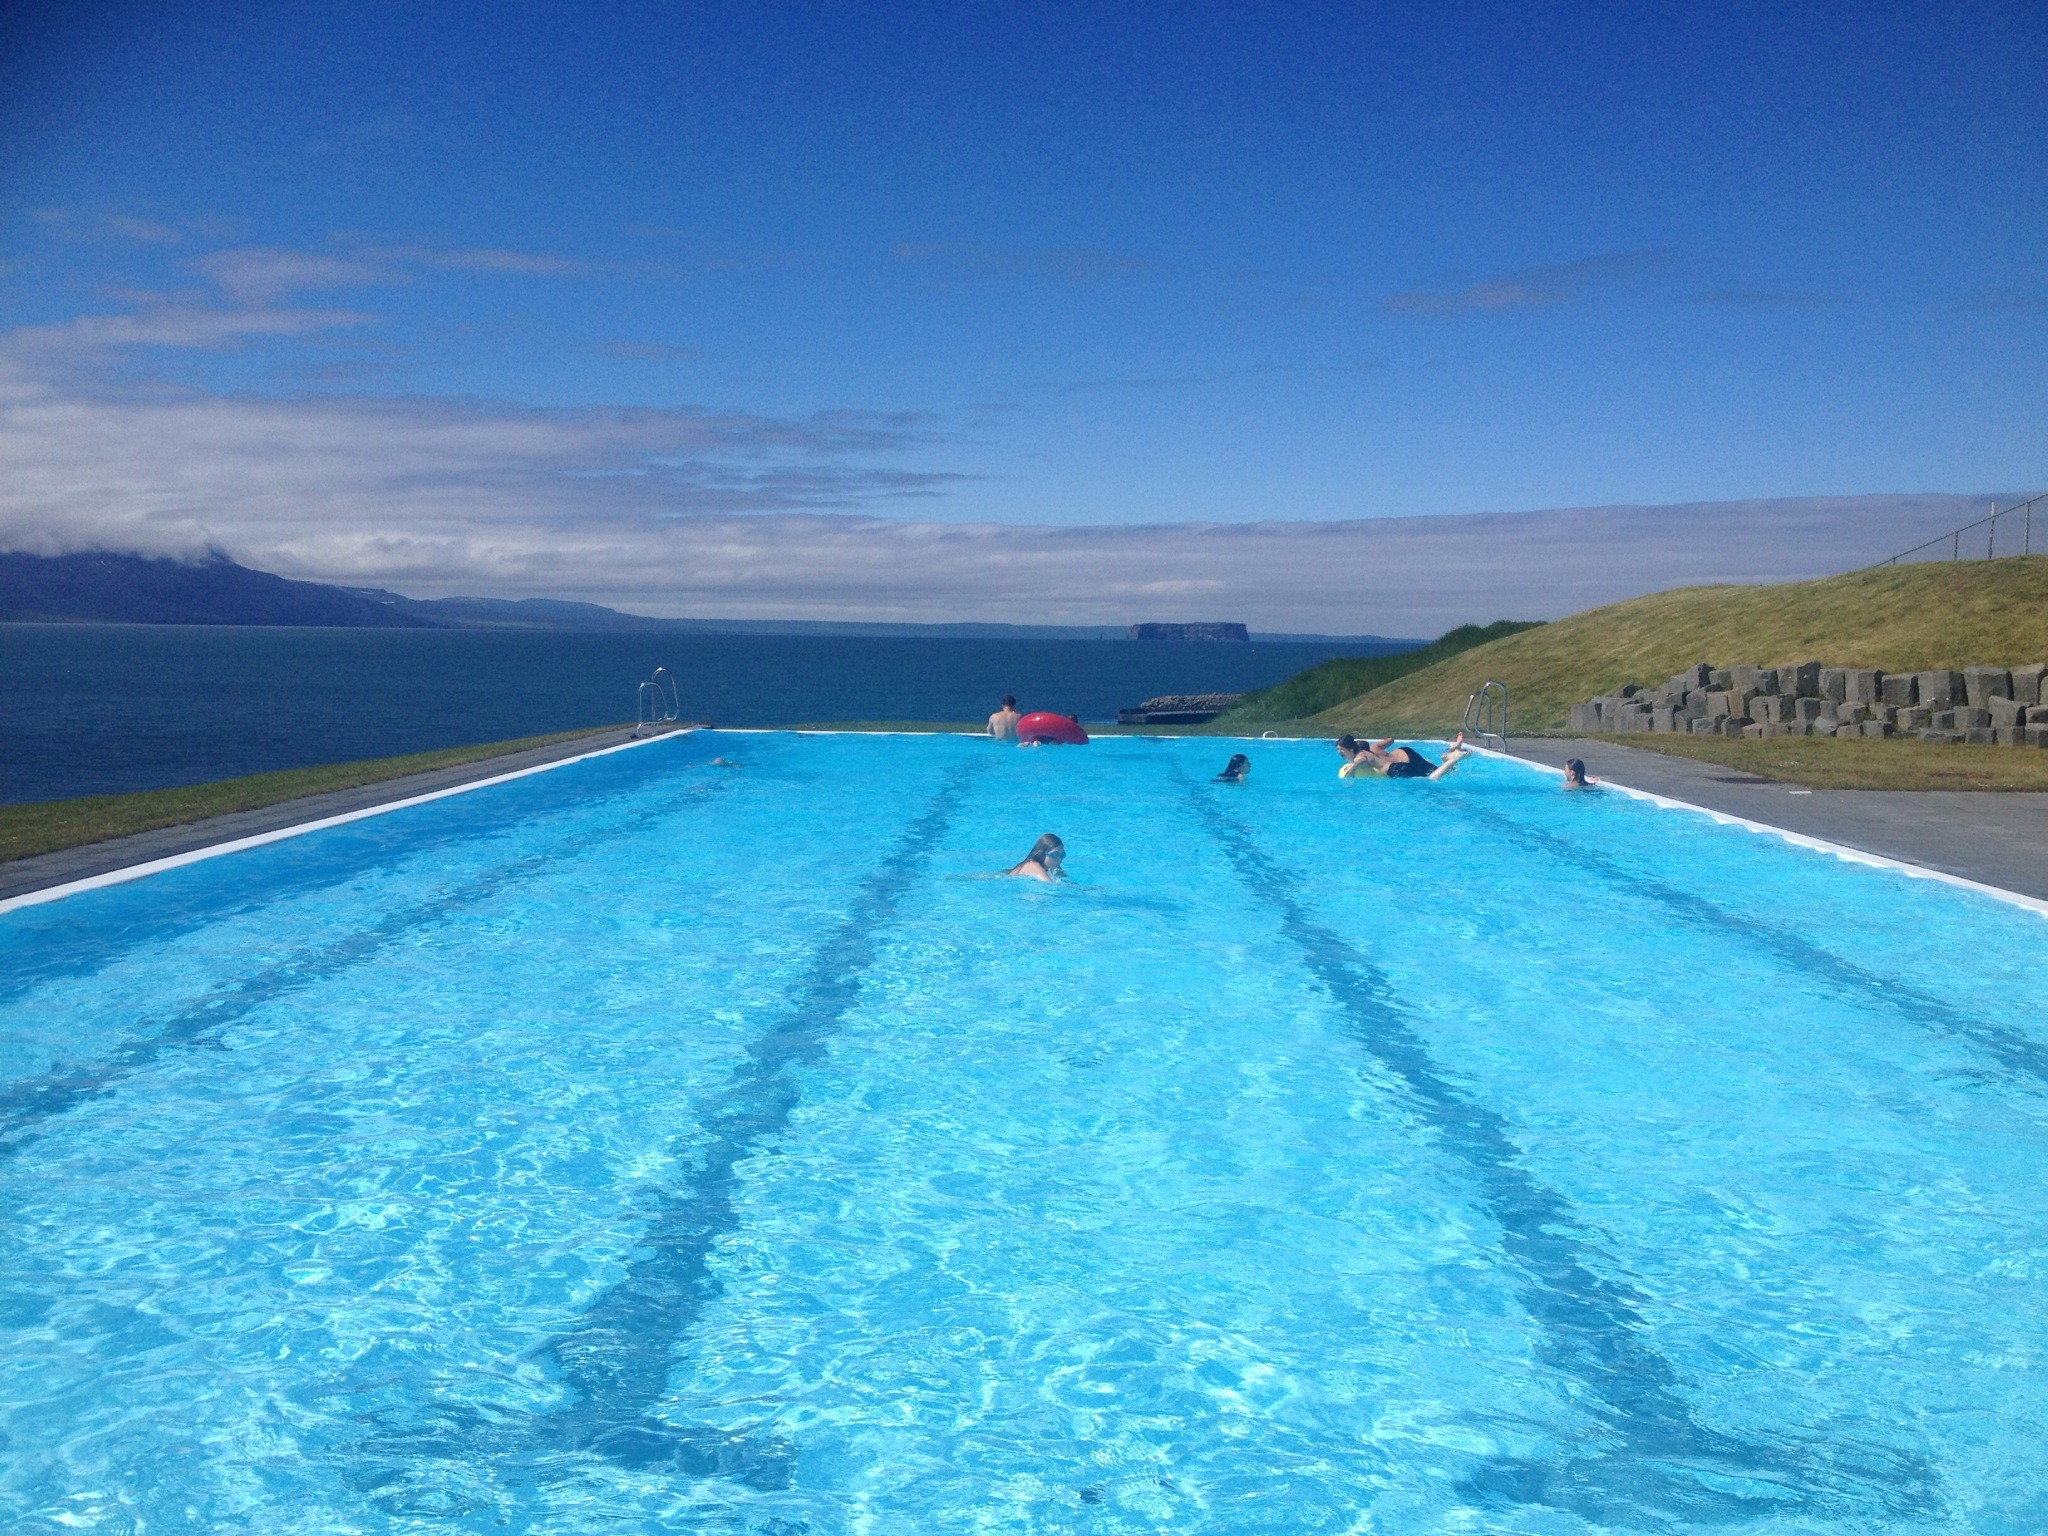 Swimming pool in Iceland